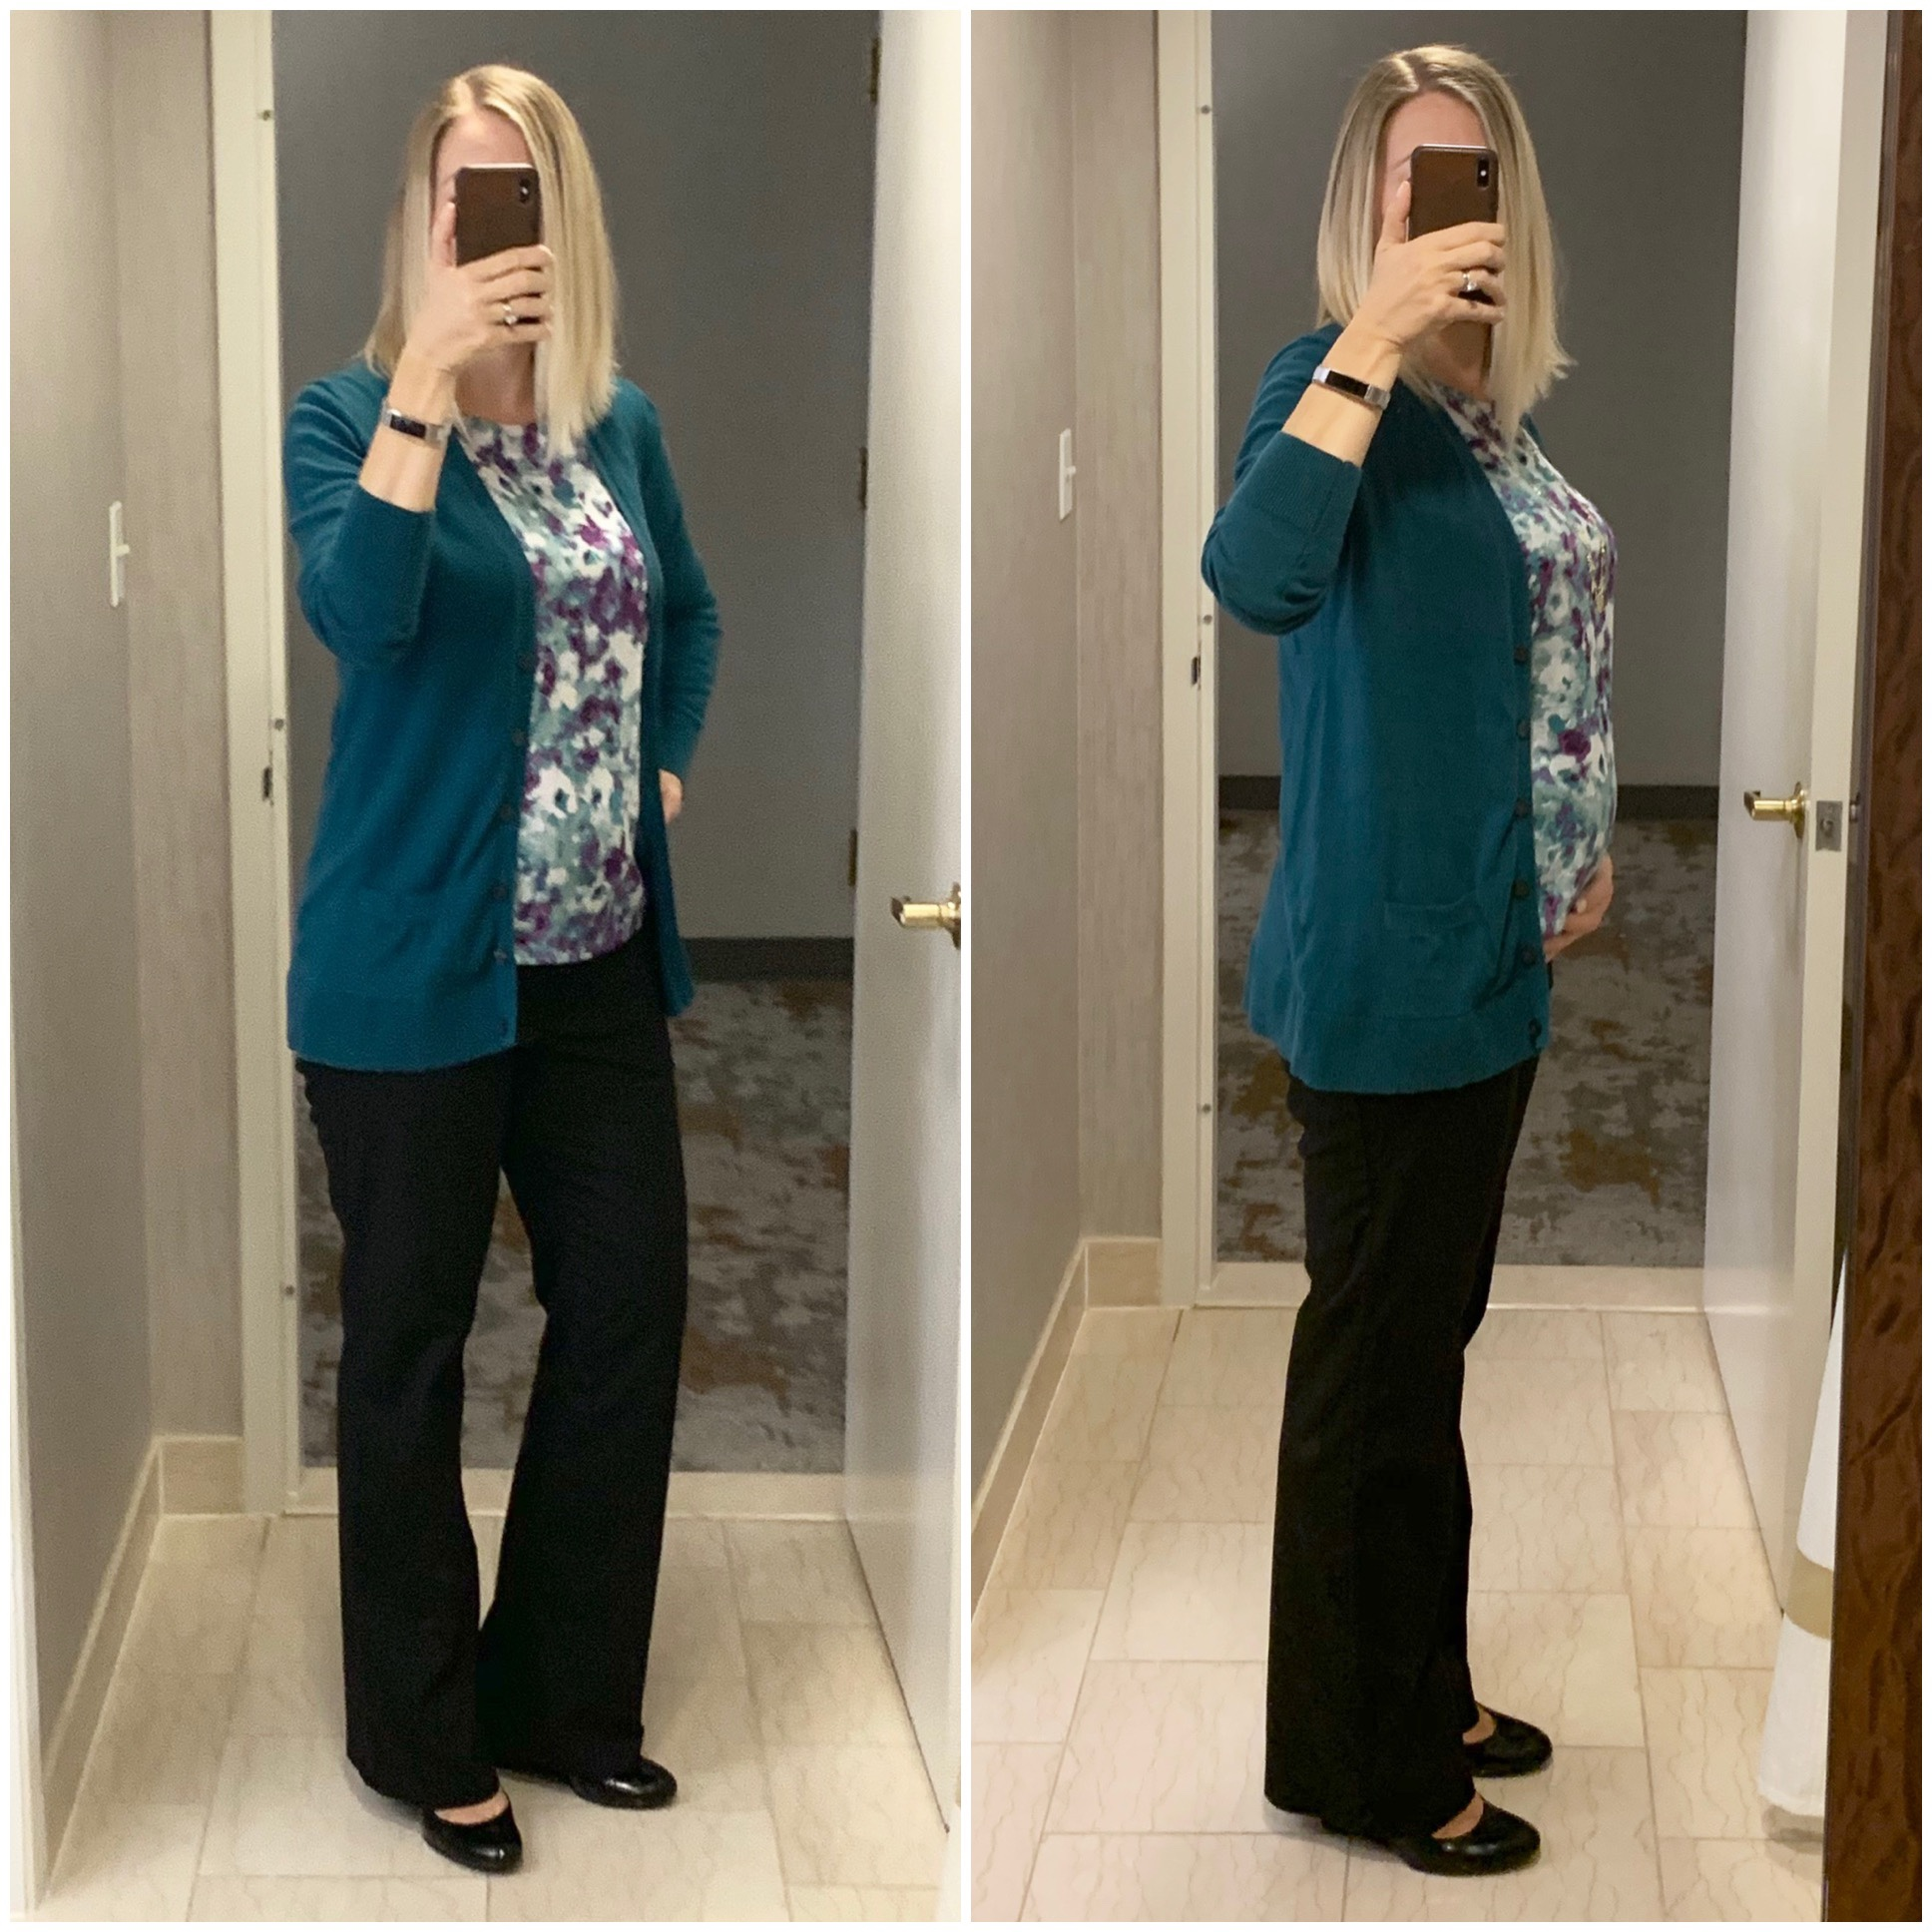 890c305cd15f8 Depending on the top I choose I look significantly more or less pregnant. I  think this top sort of skims my stomach and depending on how I'm standing  it's ...